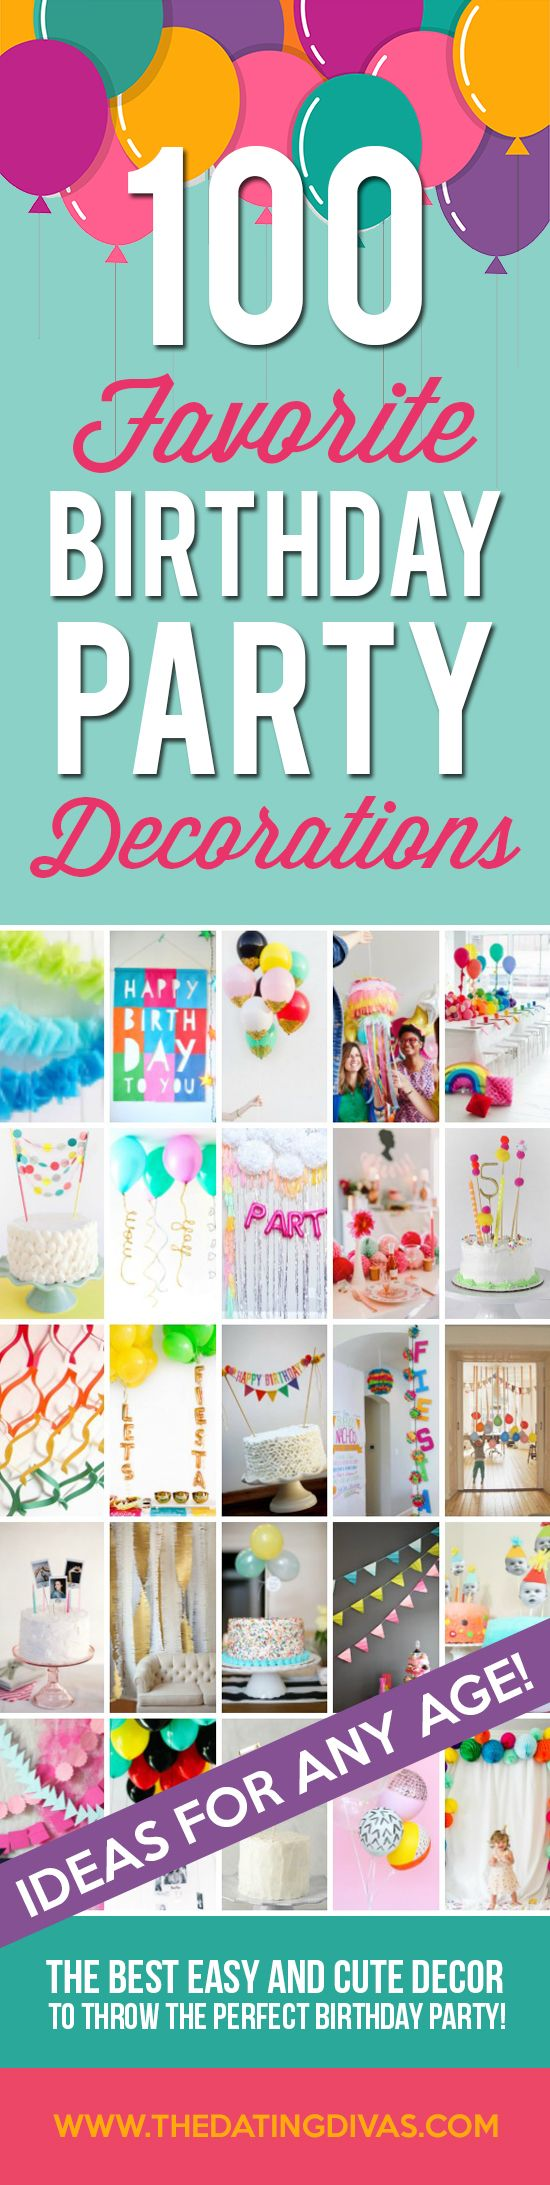 100 FAVORITE Birthday Party Decoration Ideas- from balloons and banners to cake toppers and MORE! From TheDatingDivas.com